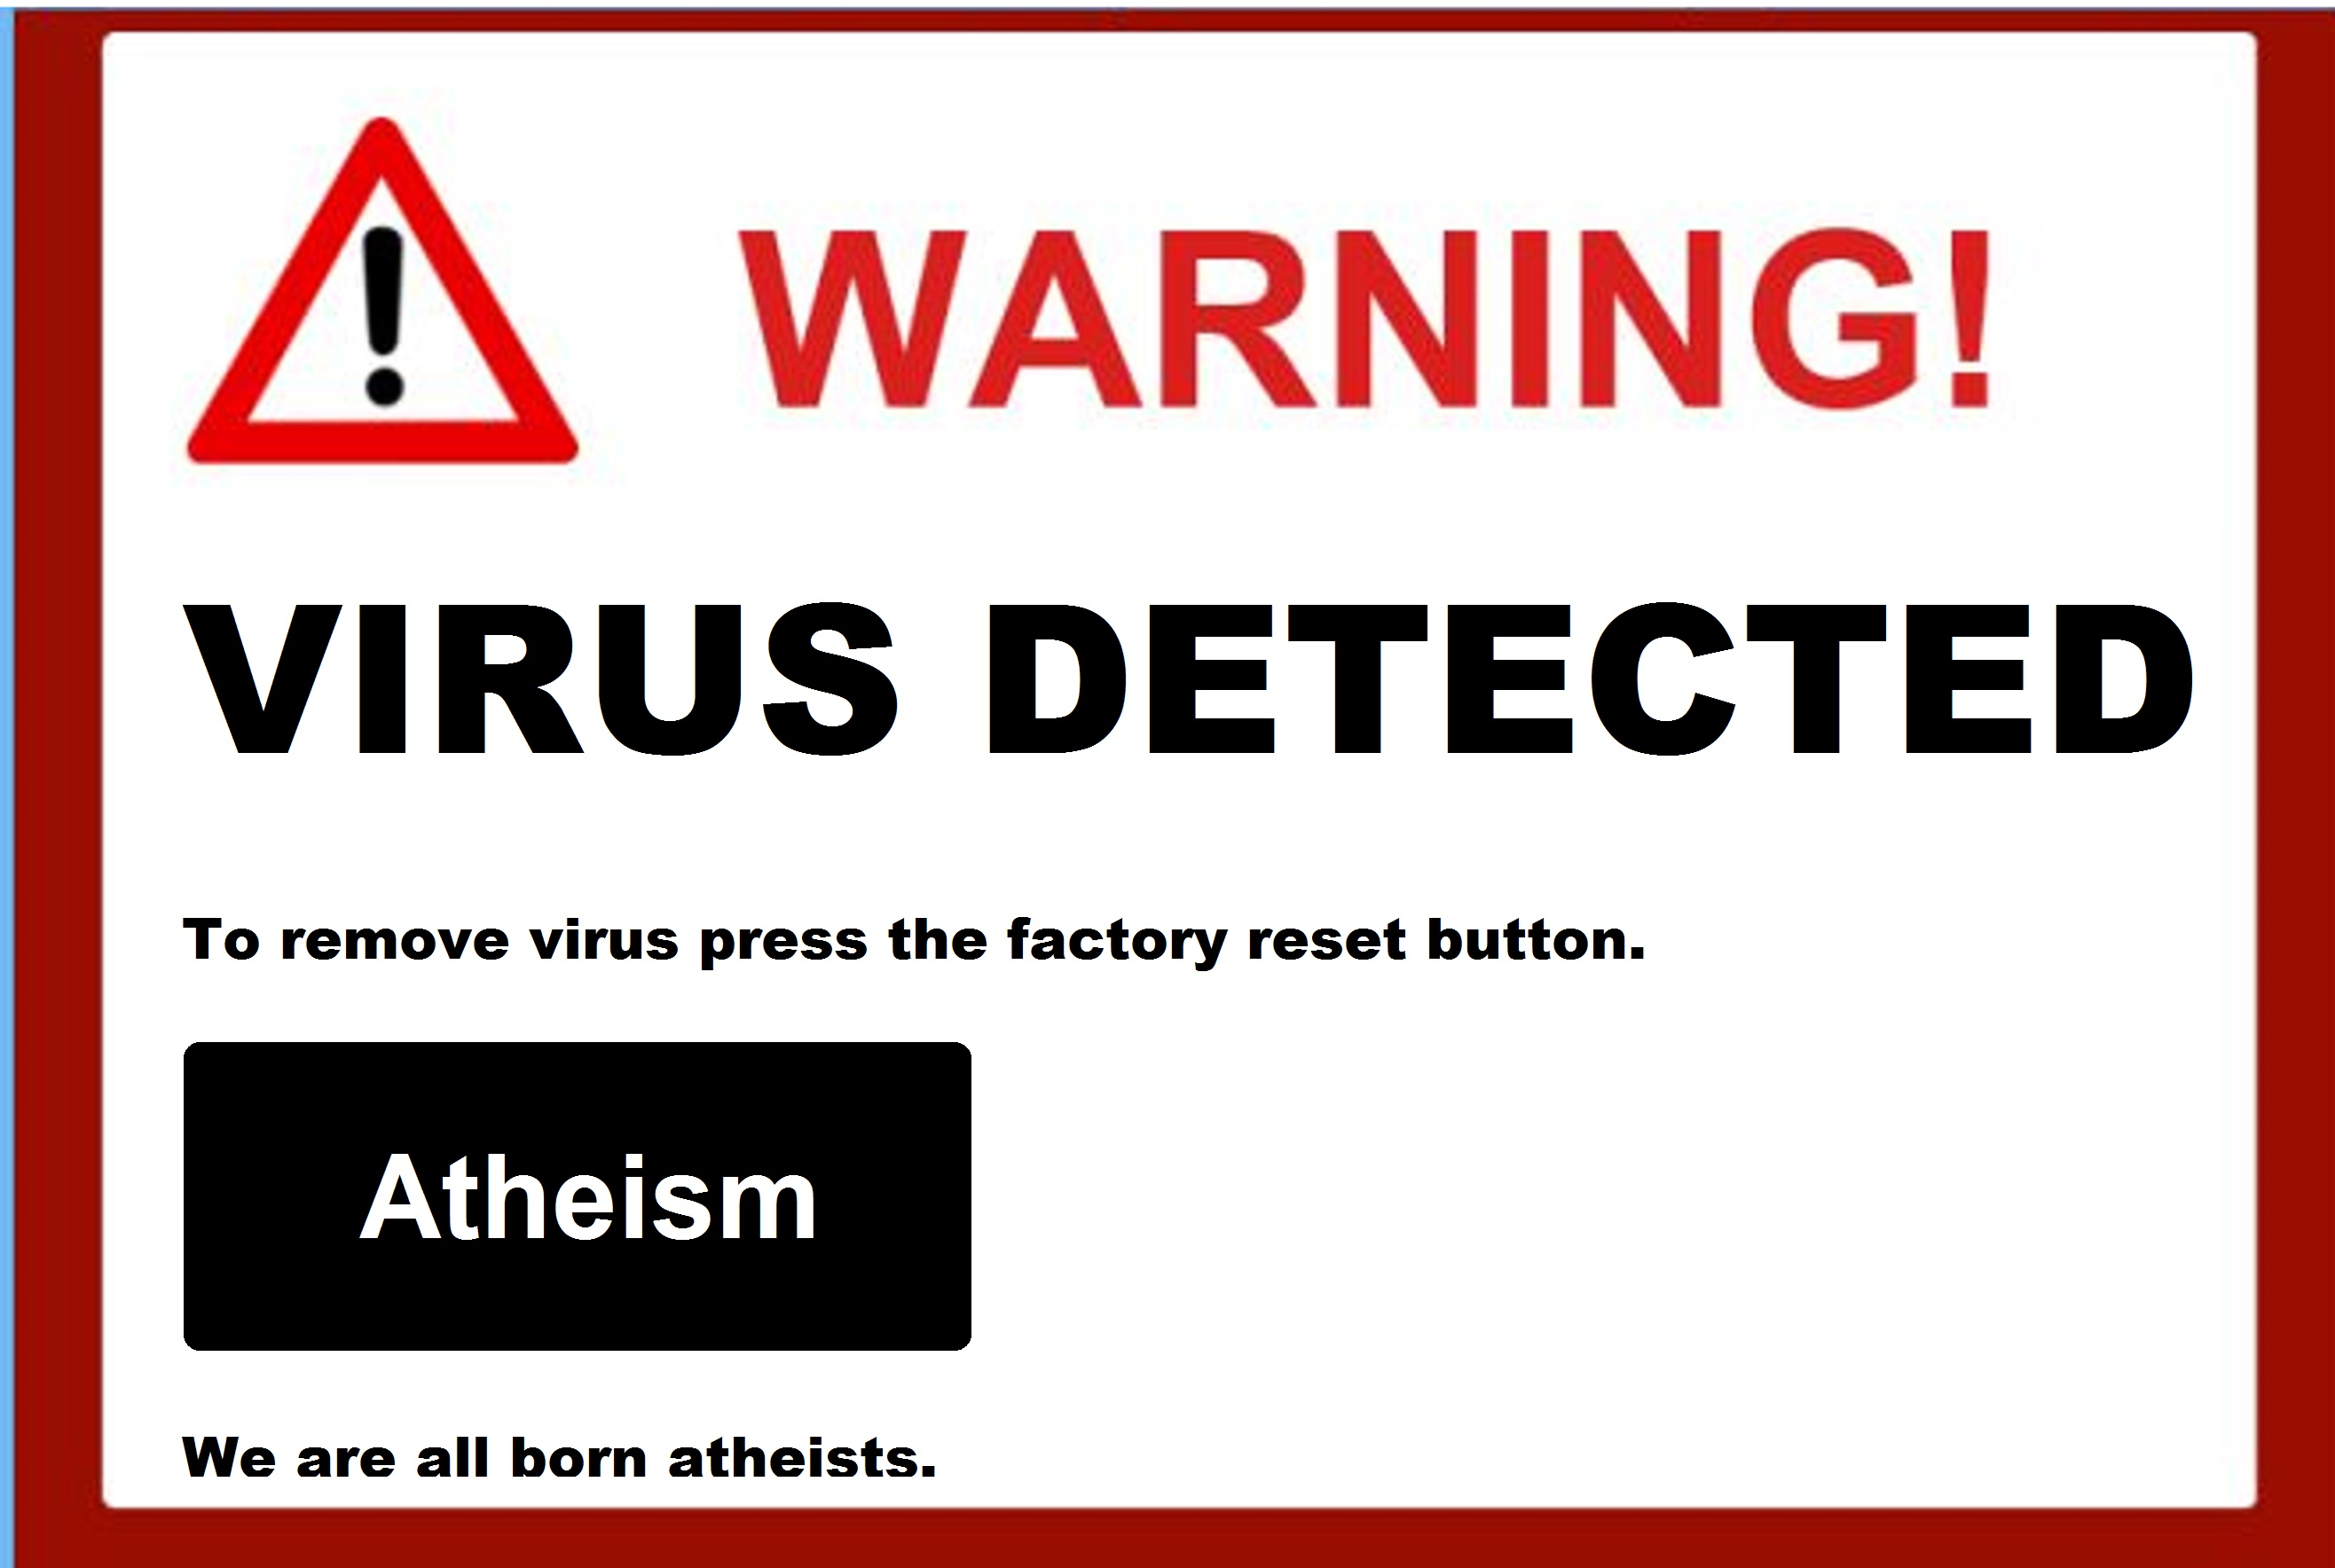 To remove virus press the factory reset button. ATHEIM We are all born atheists.